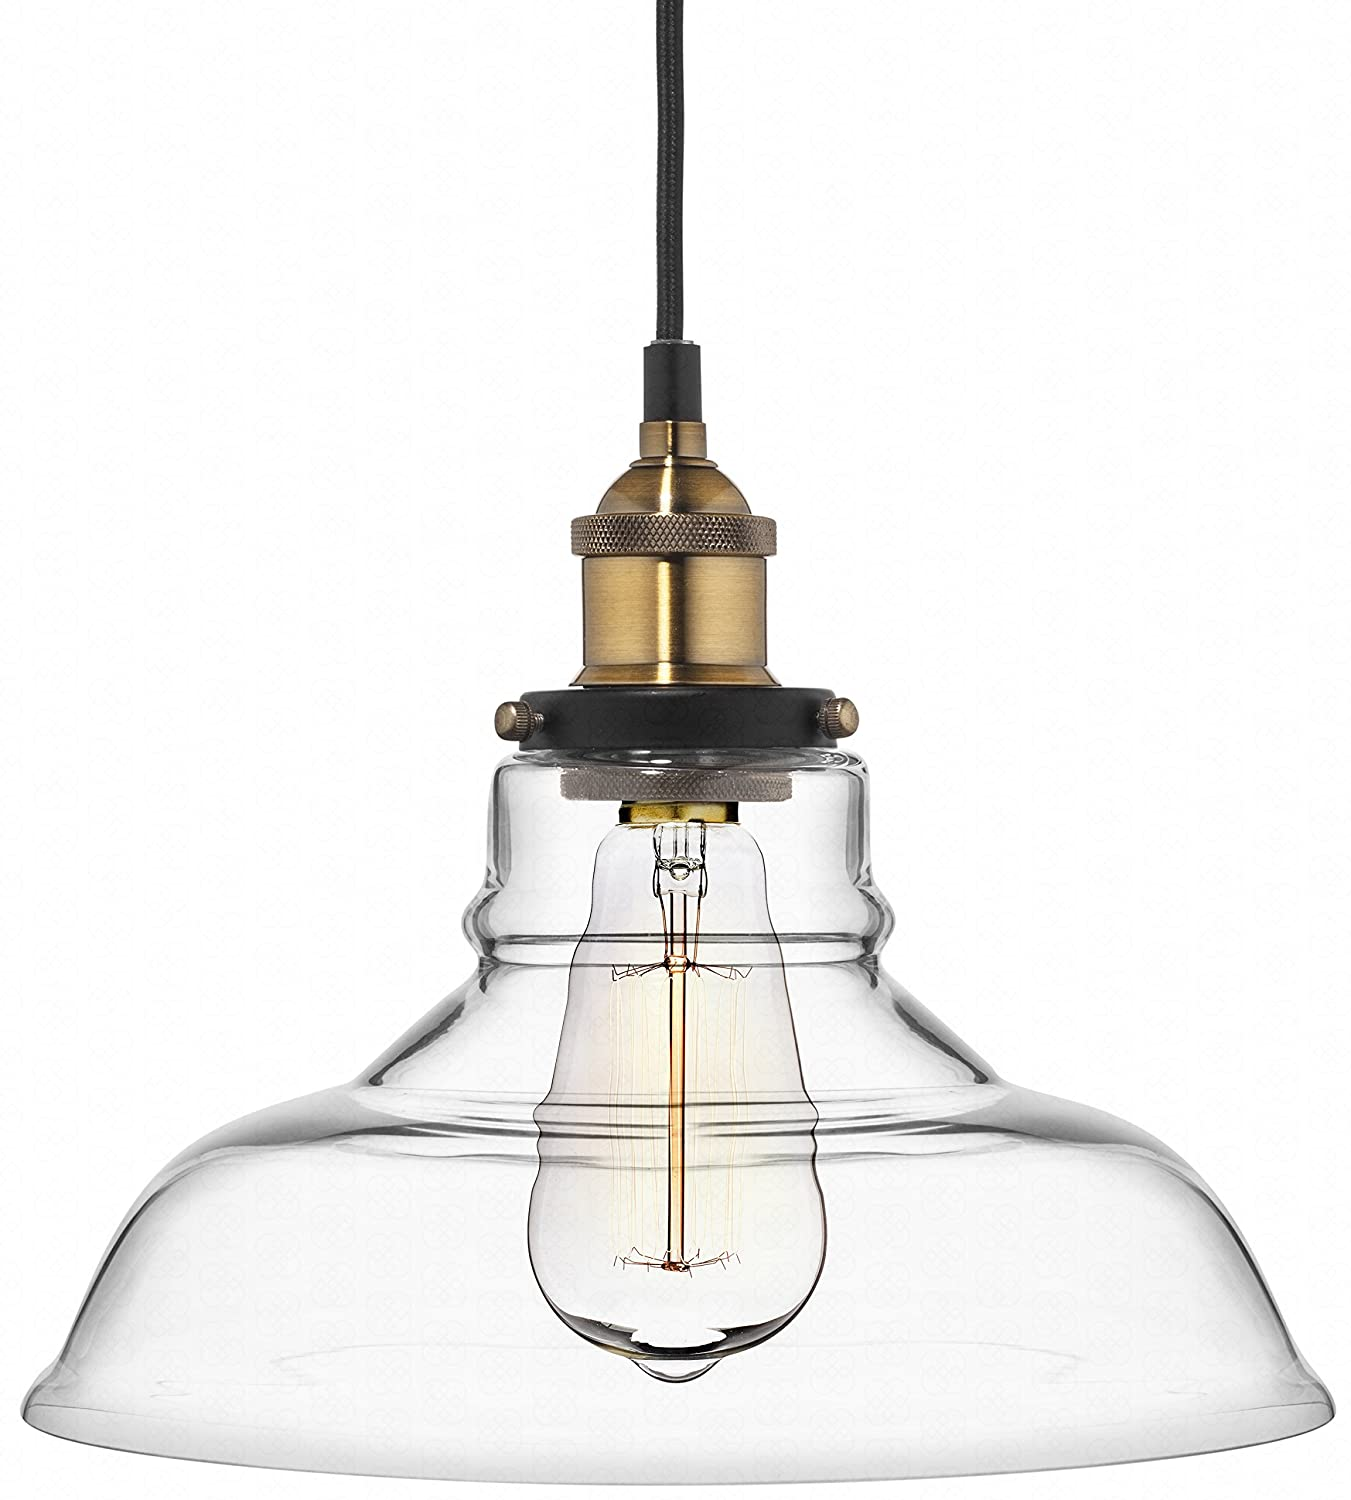 series light shop lights wp matters pendant lighting sizes finn